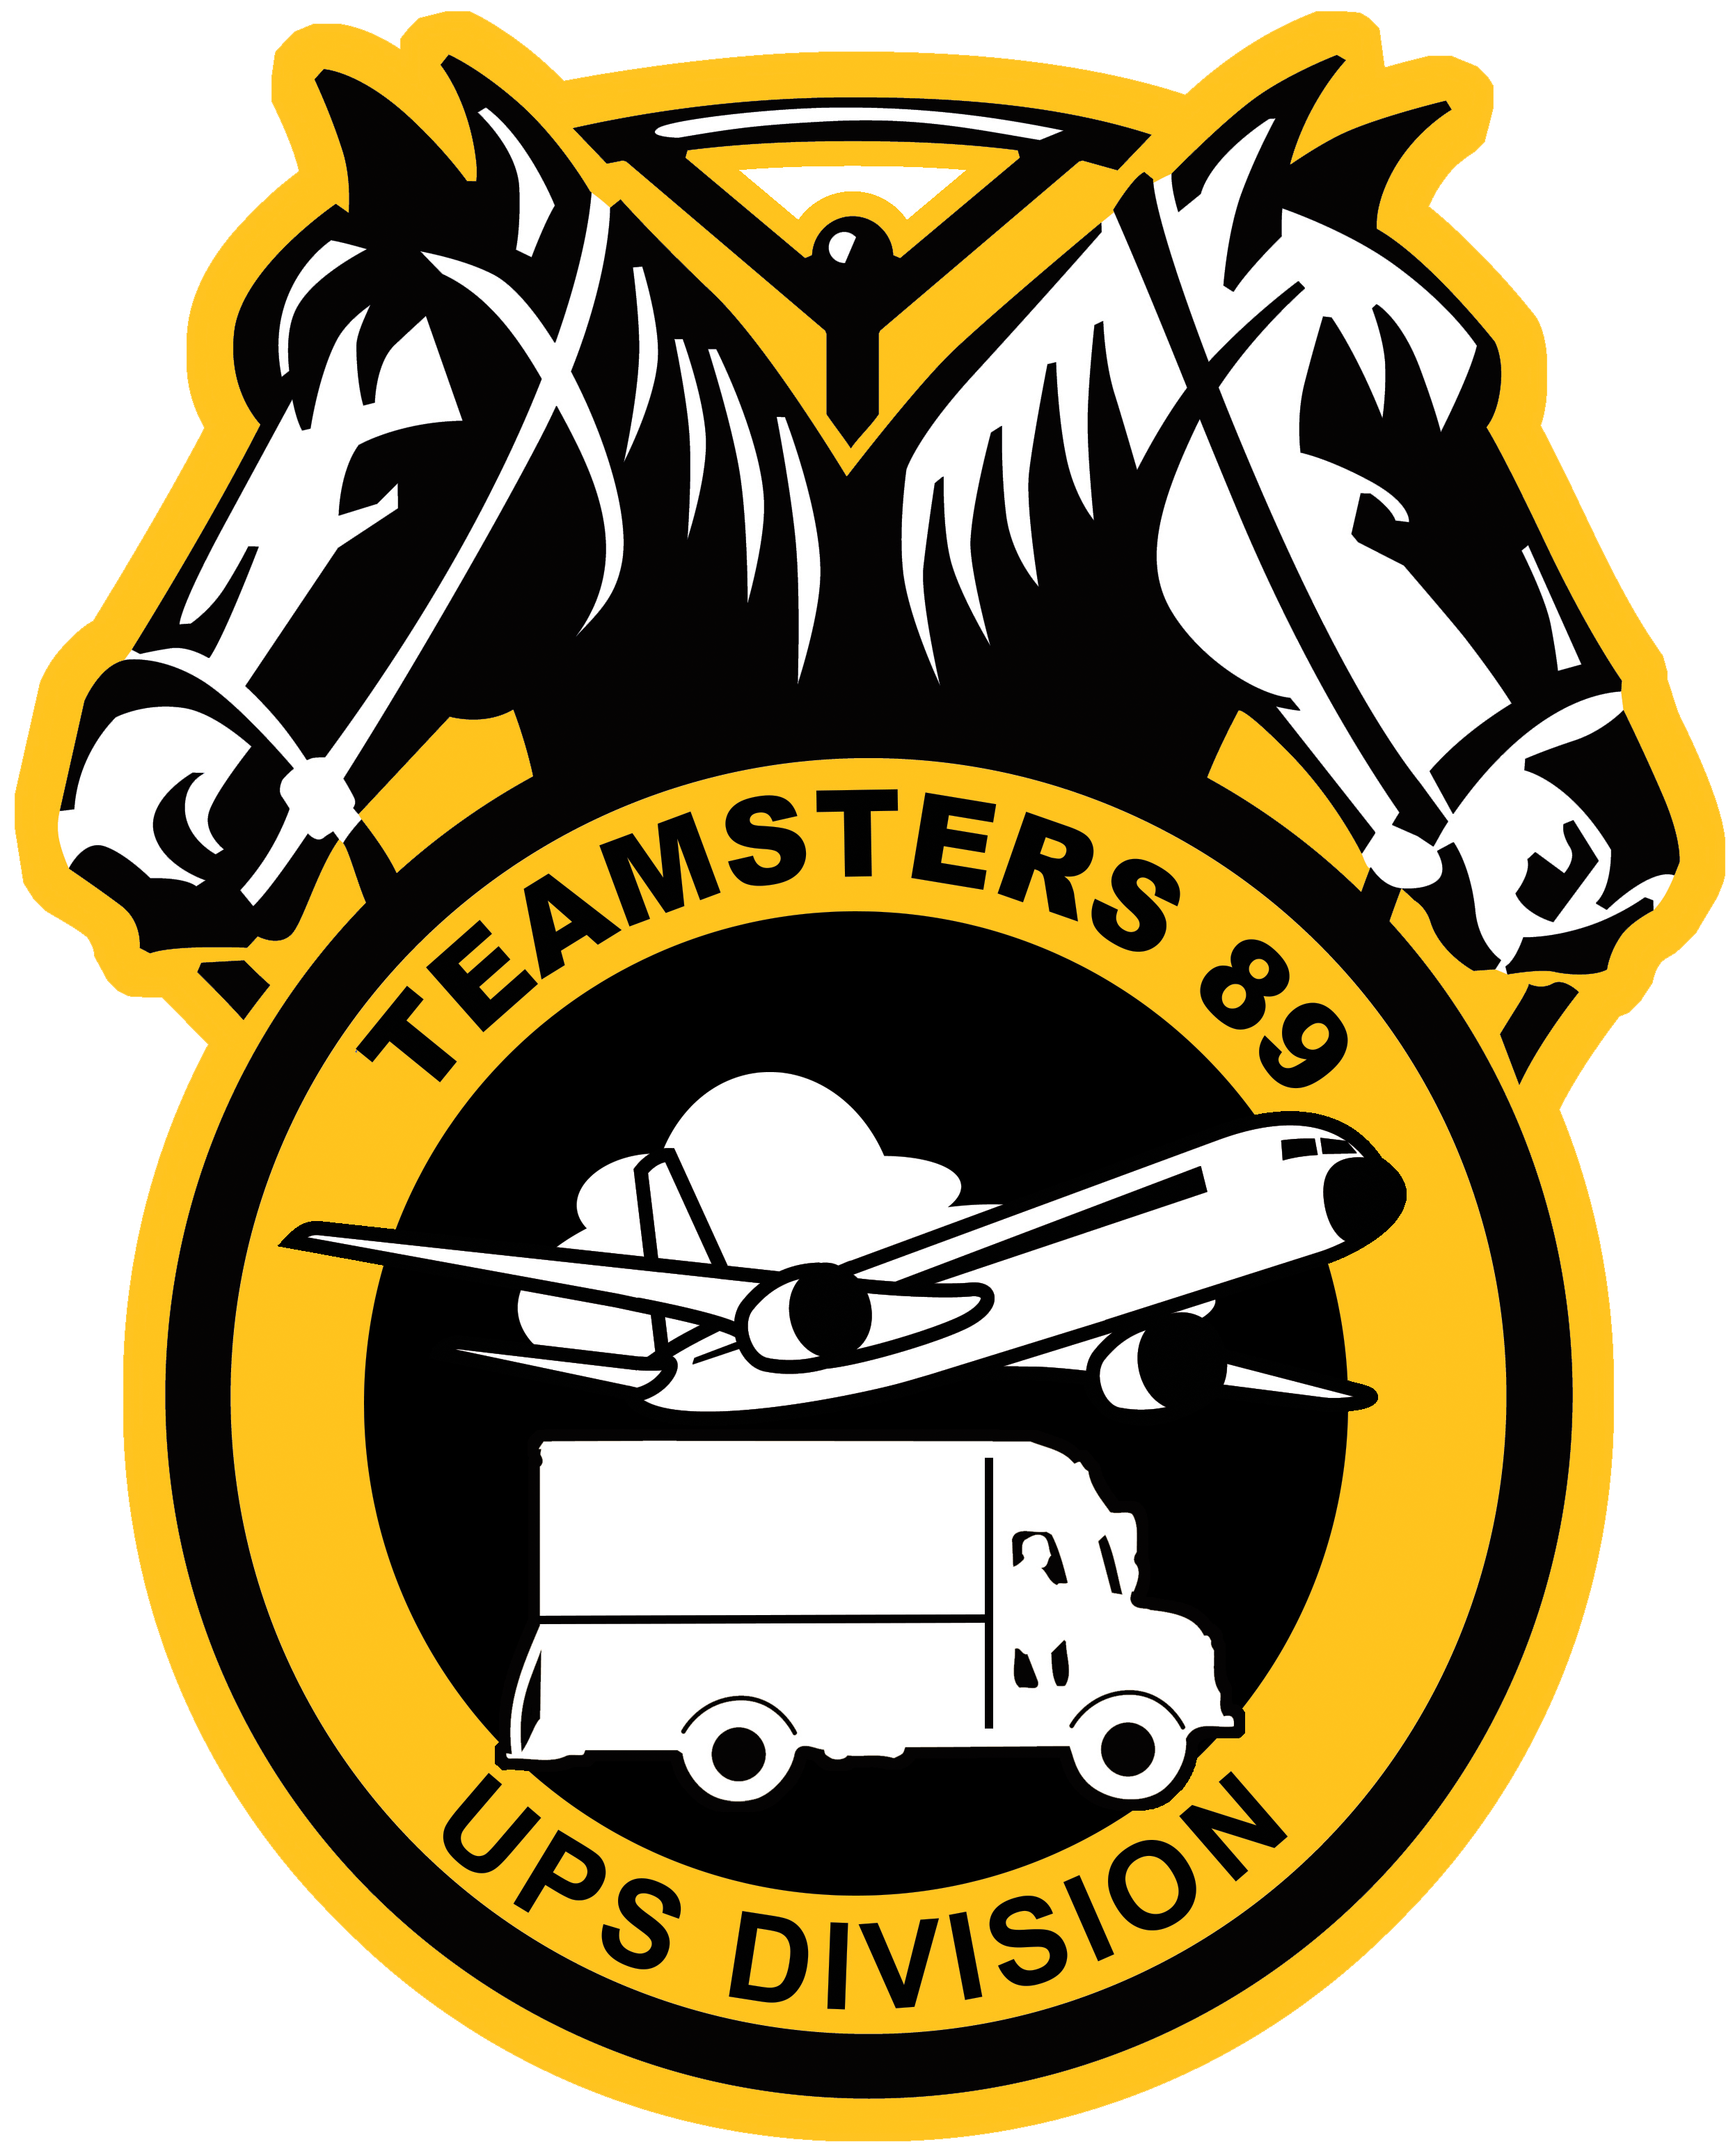 Teamsters Local 89 Ups Division